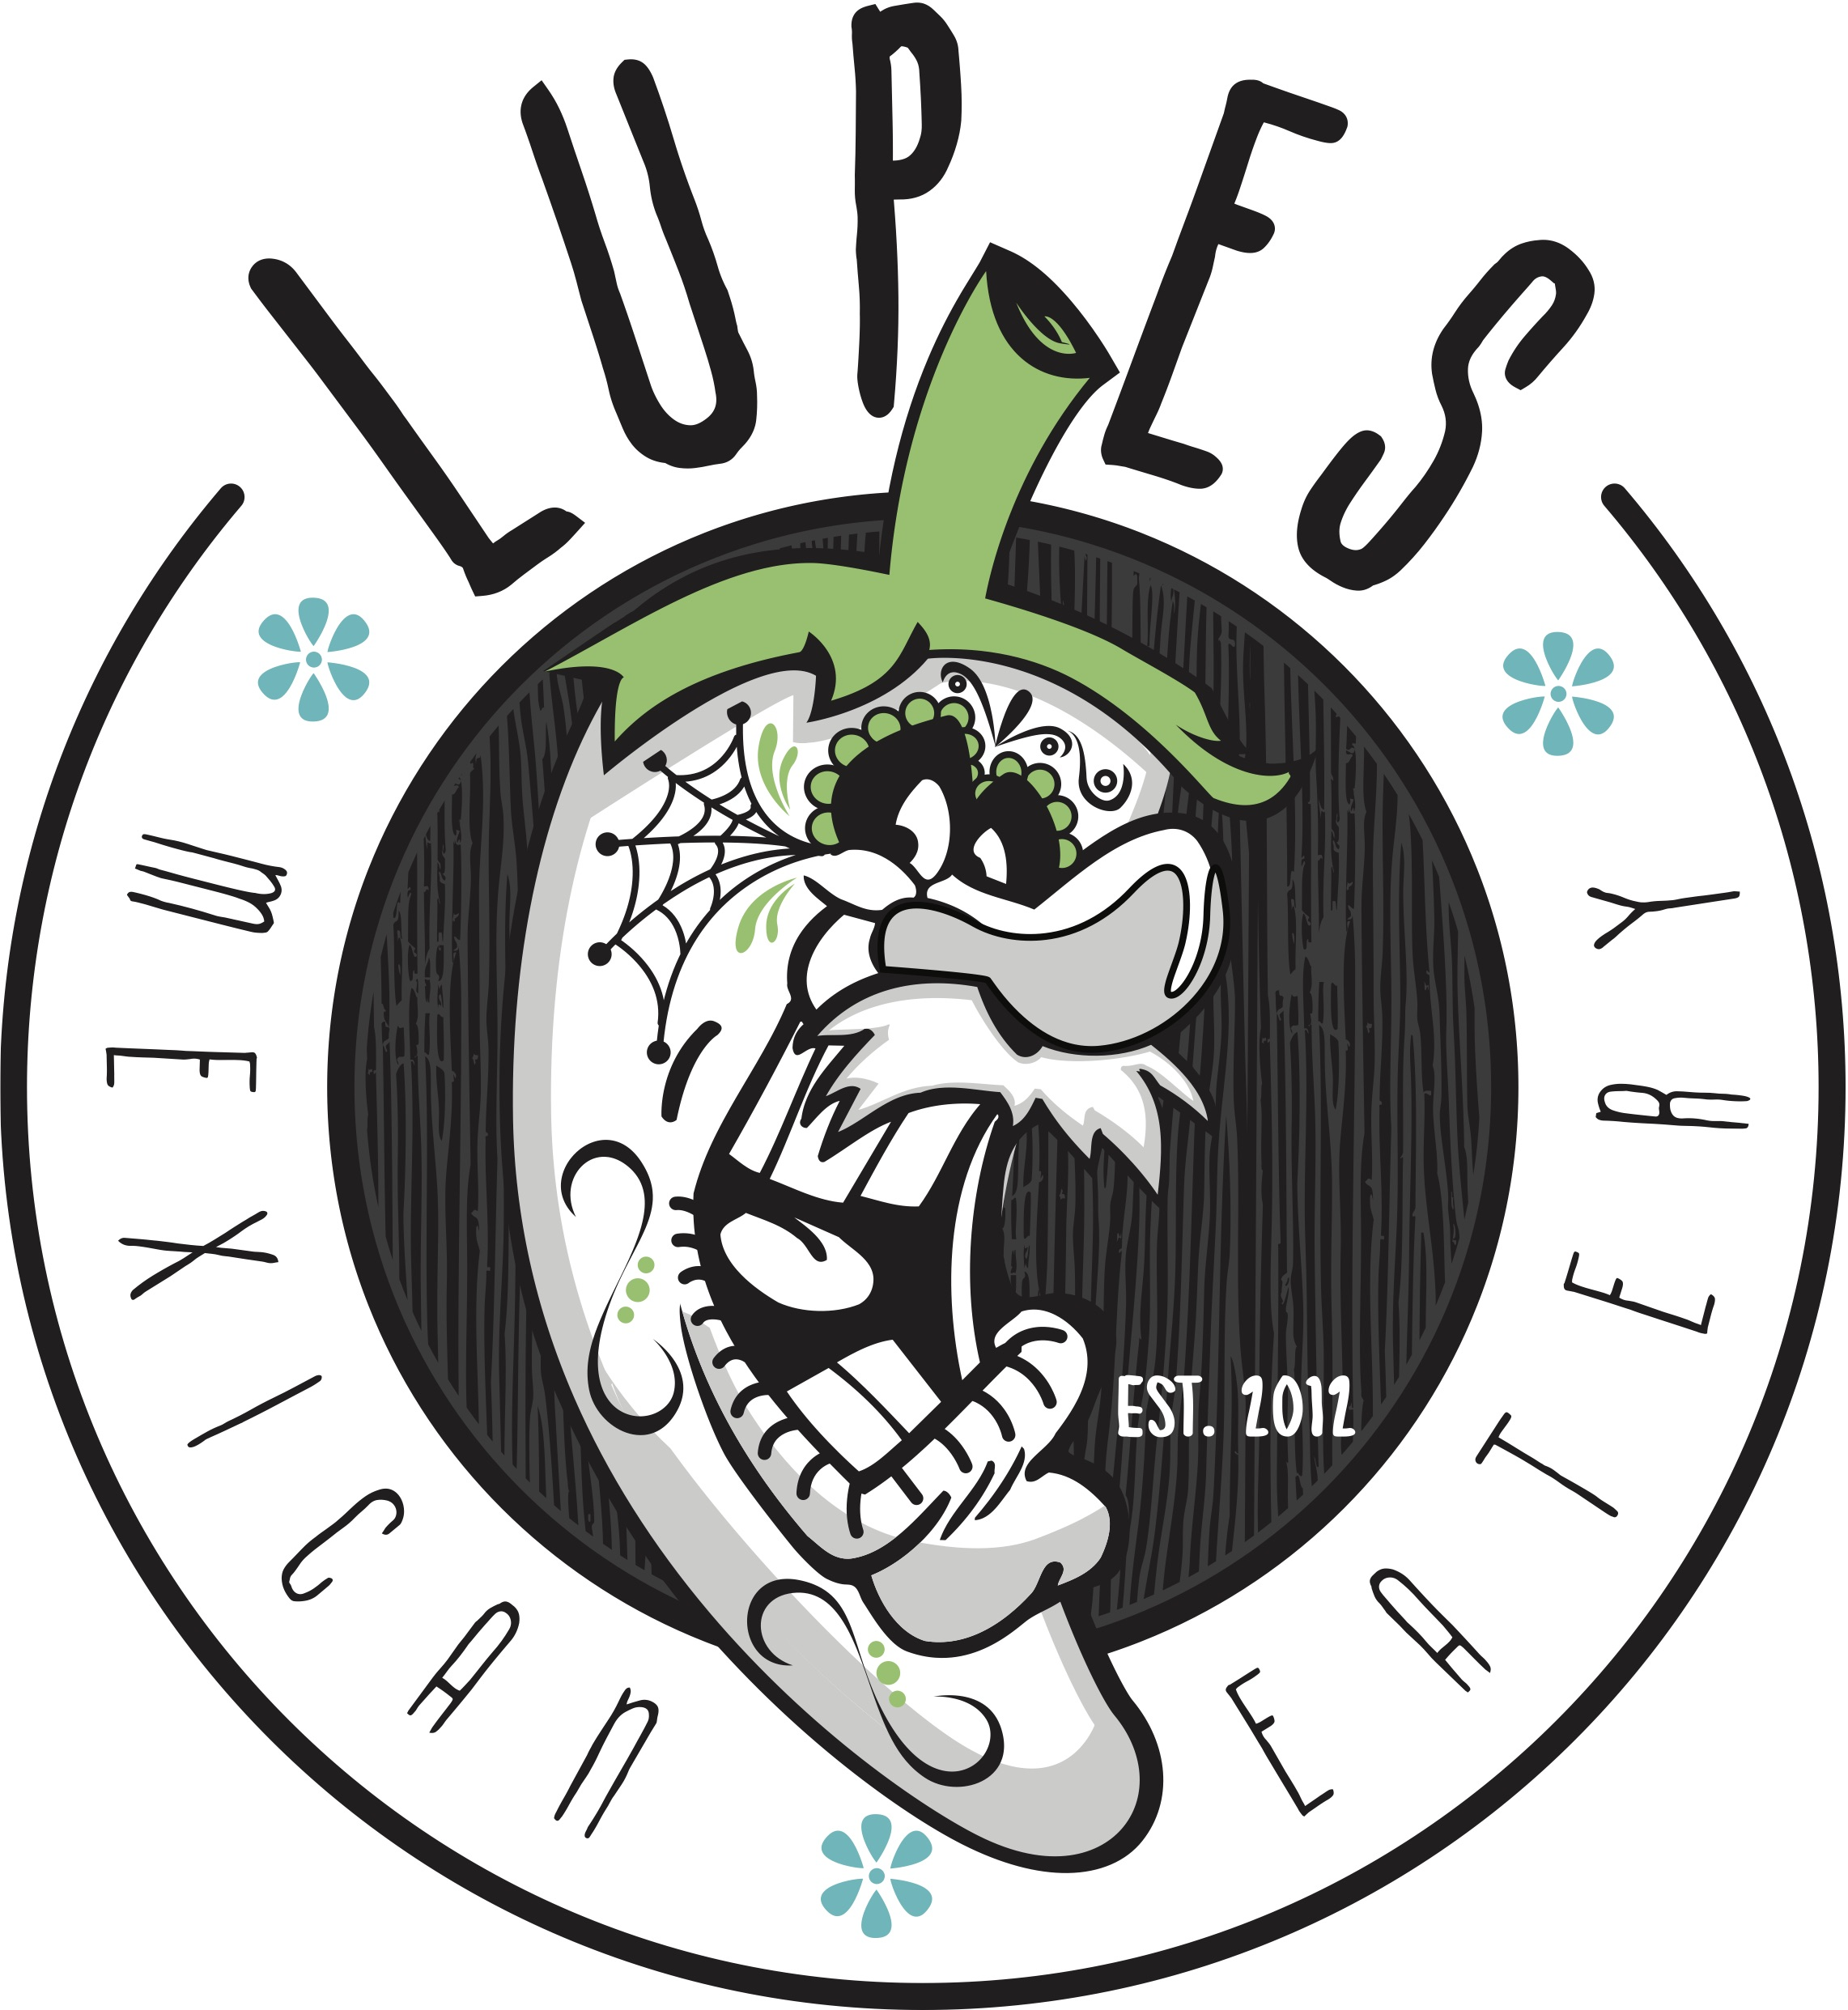 Lupes